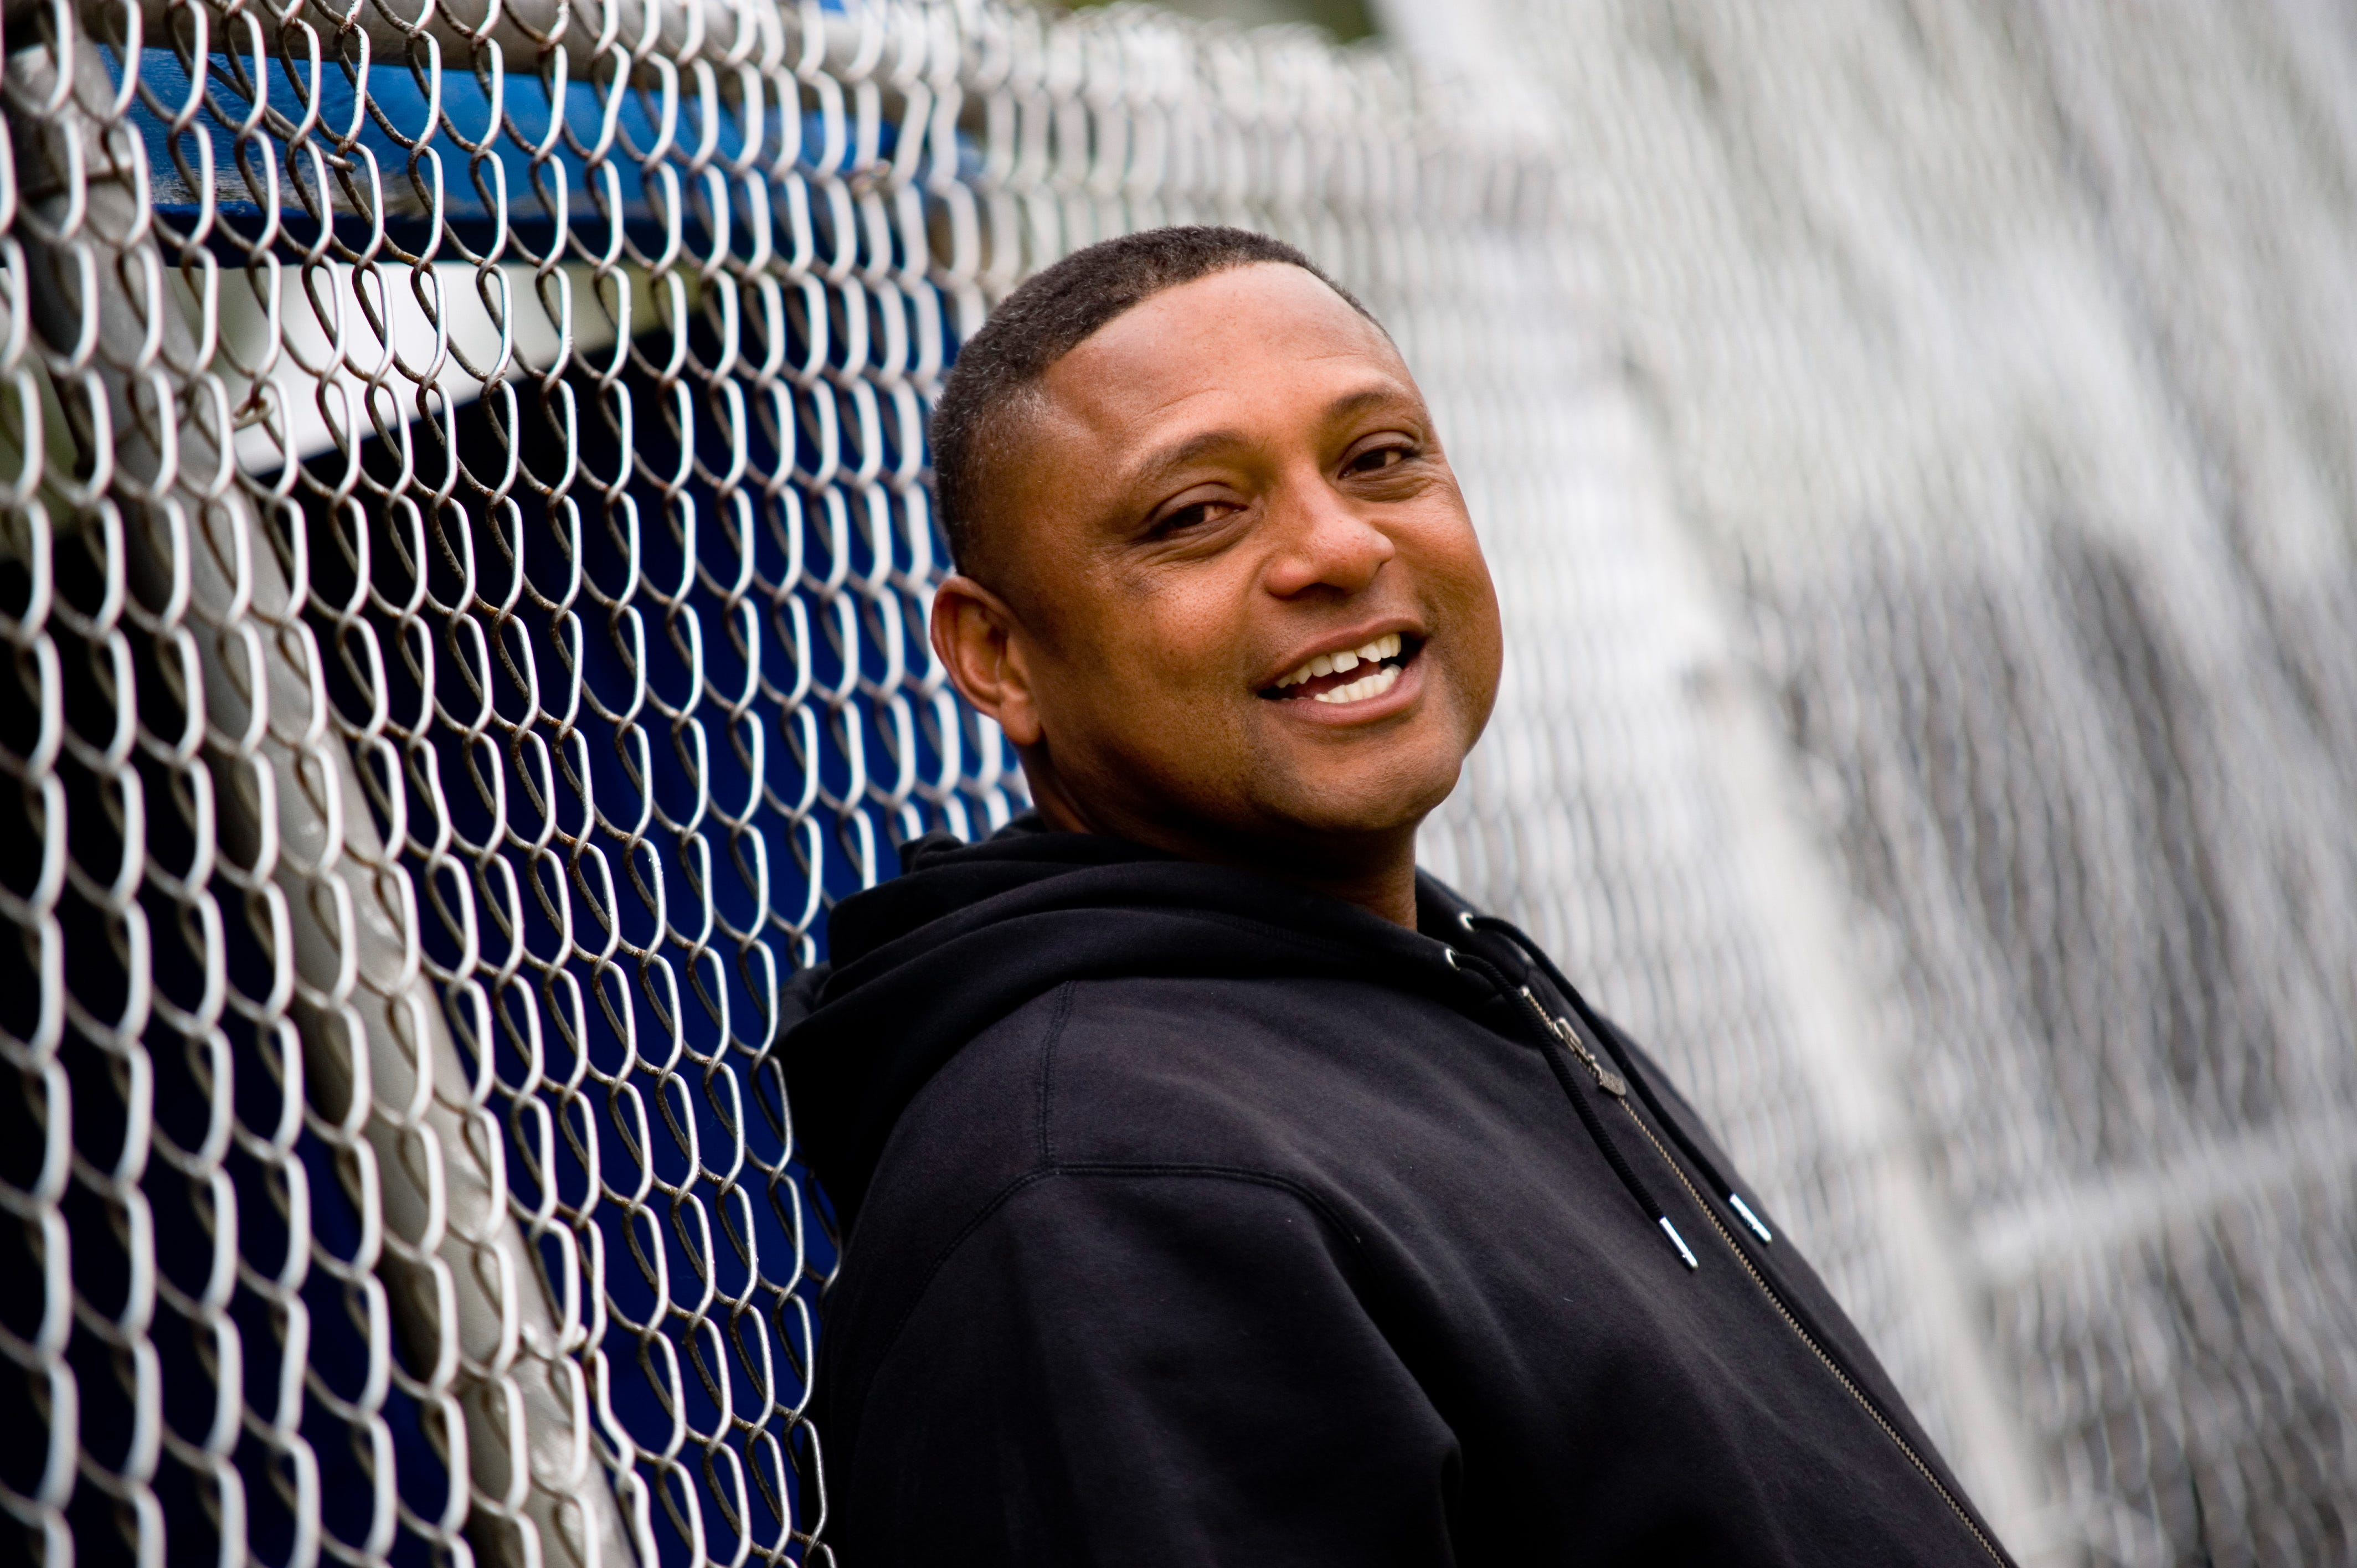 Dwayne Henry, of Middletown, will be inducted into the Delaware Sports and African-American Halls of Fame for his time spent as a pitcher in the major leagues.